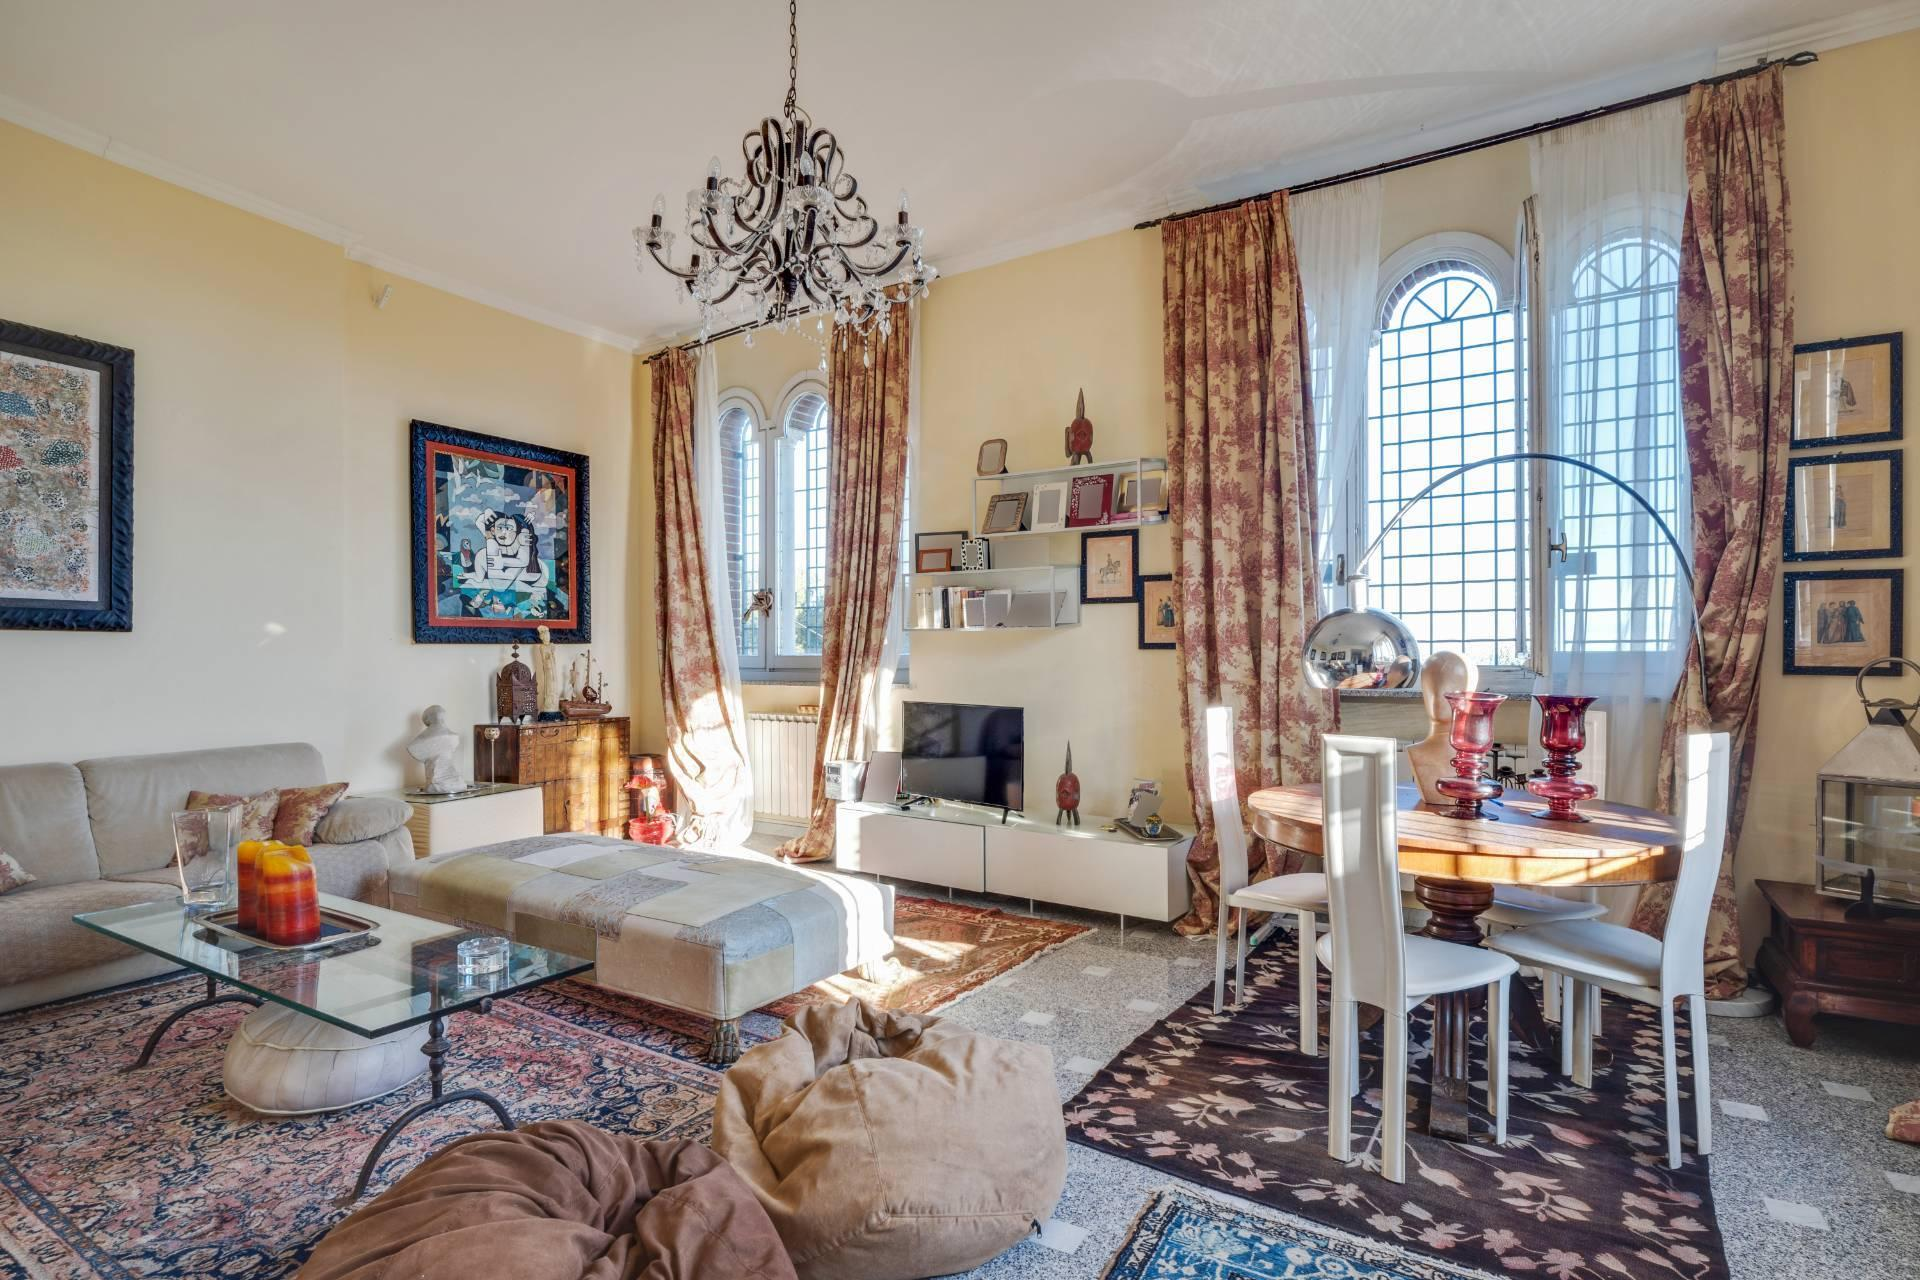 Splendid and exclusive historic villa on the hills of Albenga - 2